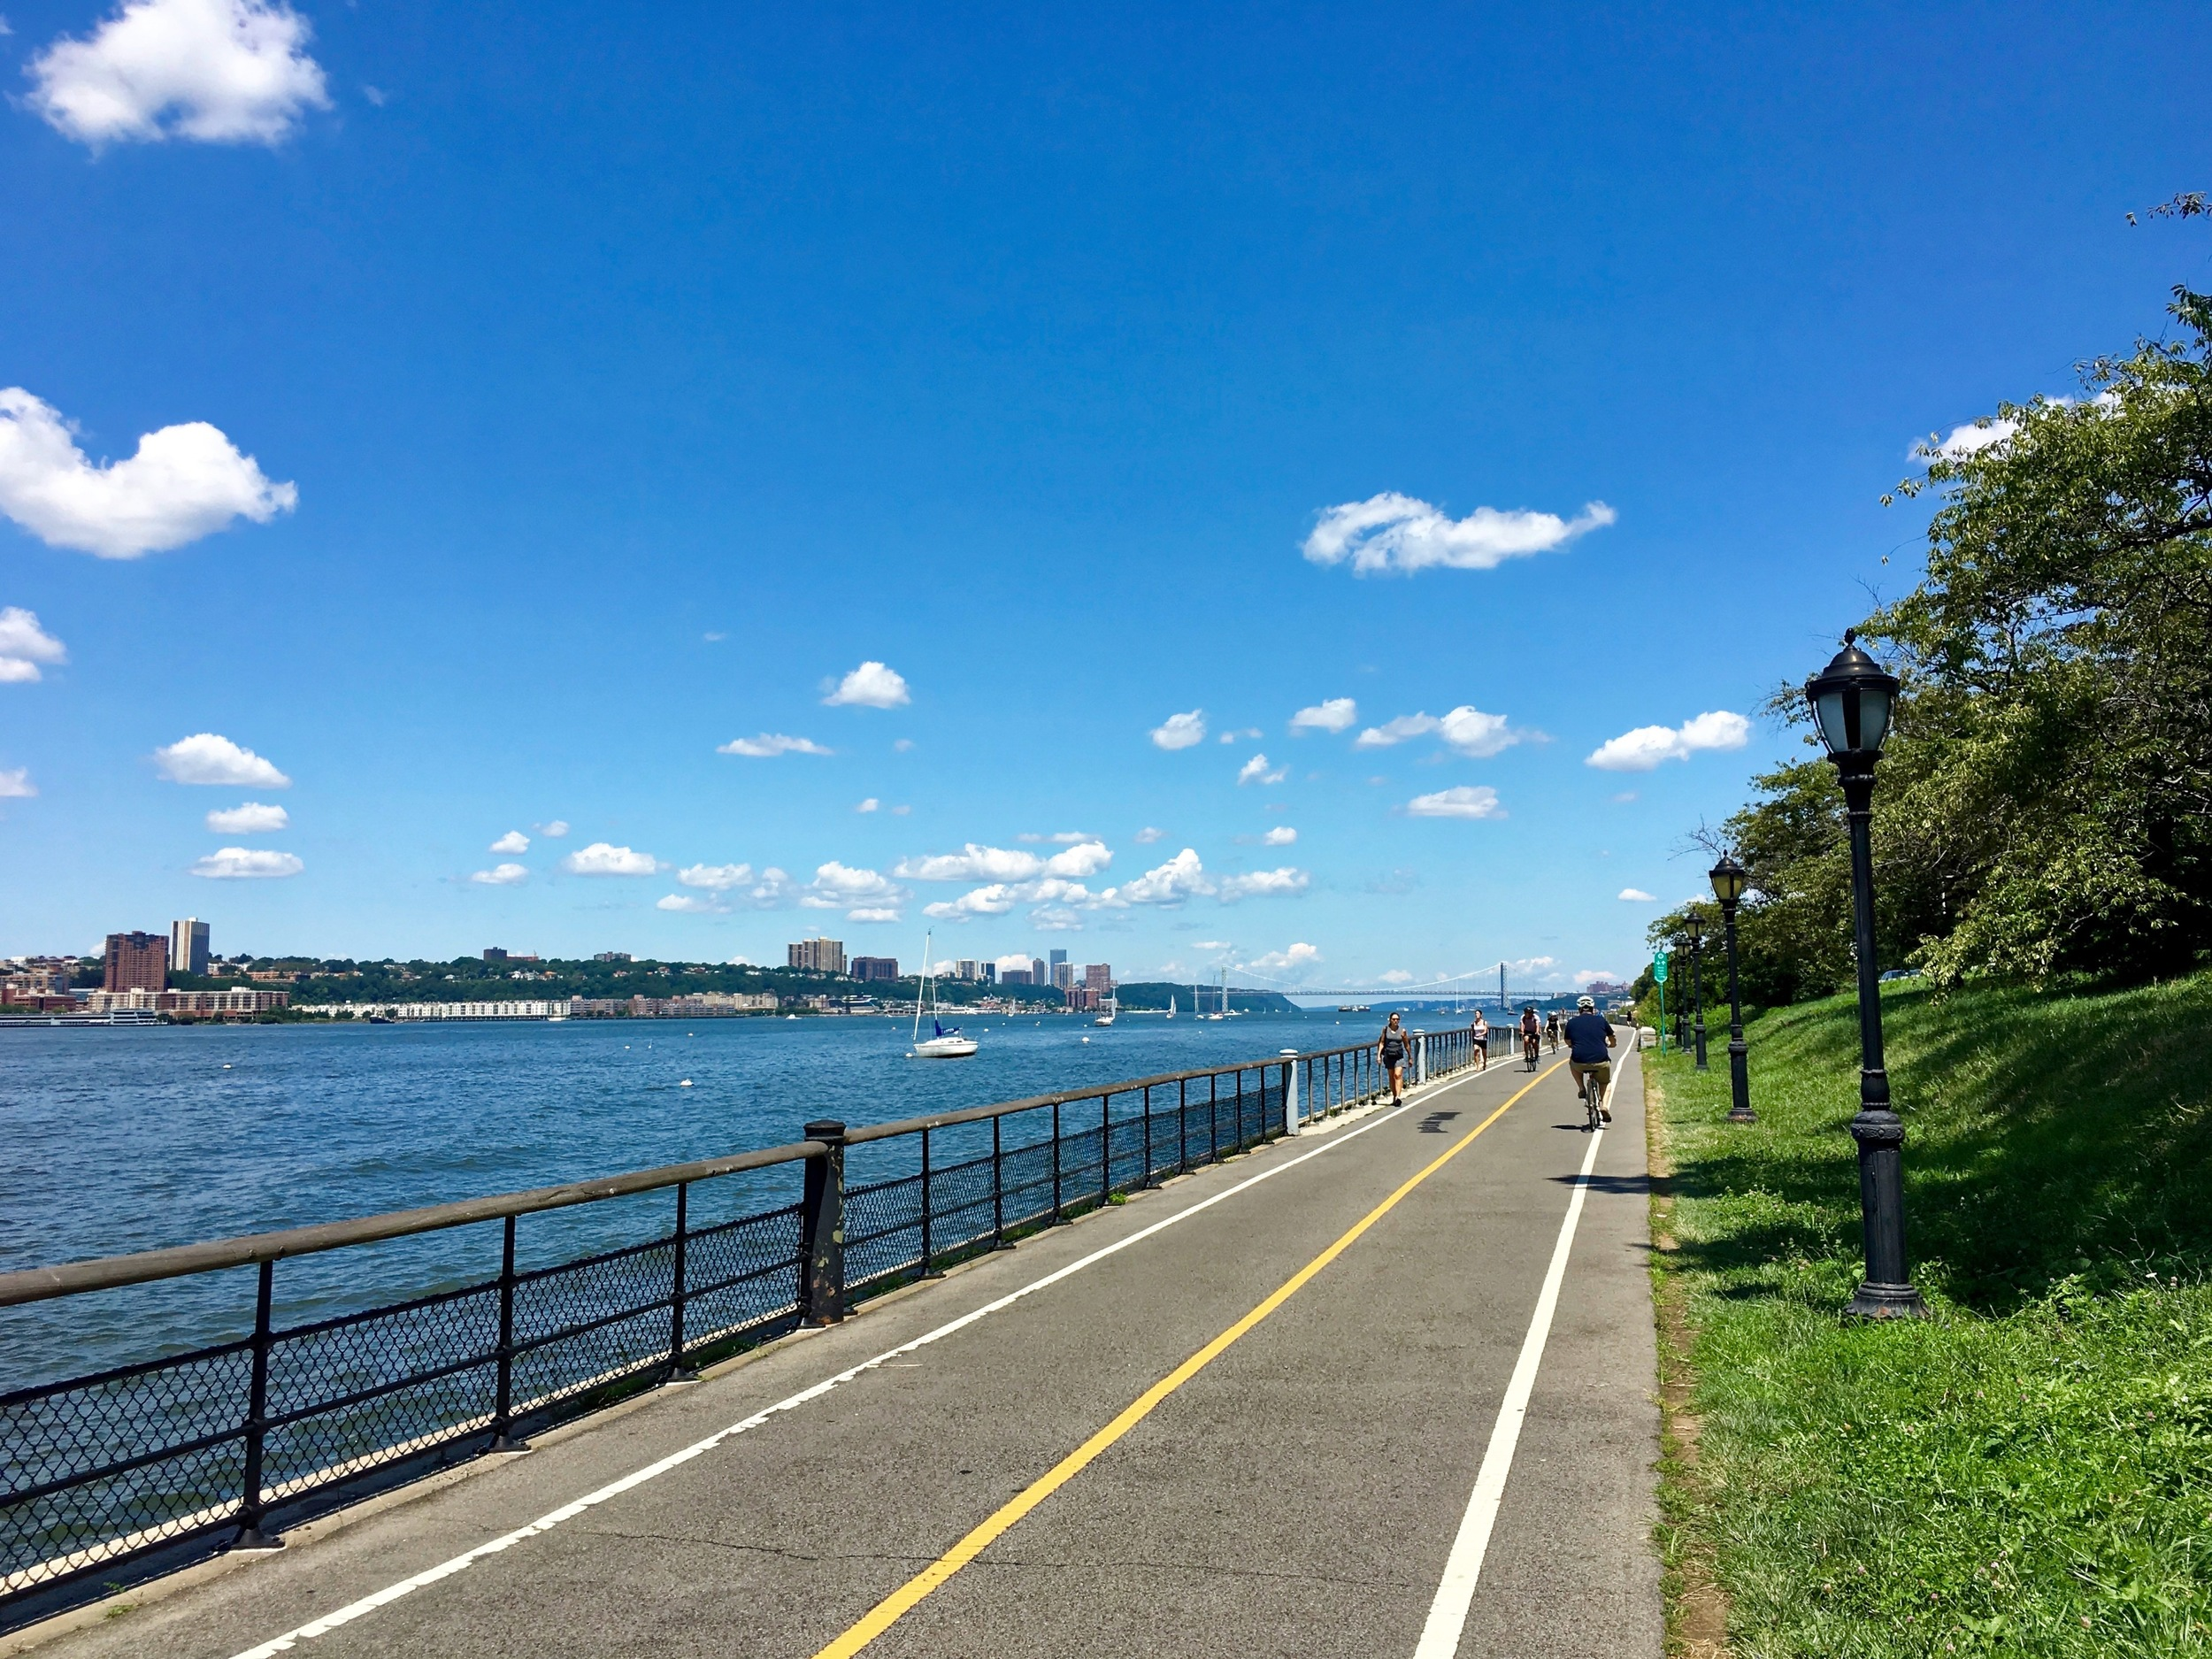 The NYC West Side Bike Path that runs north and south along the Hudson River. The bridge in the distance is the George Washington. I took this shot as I biked north to my apartment in Washington Heights on the day I returned.